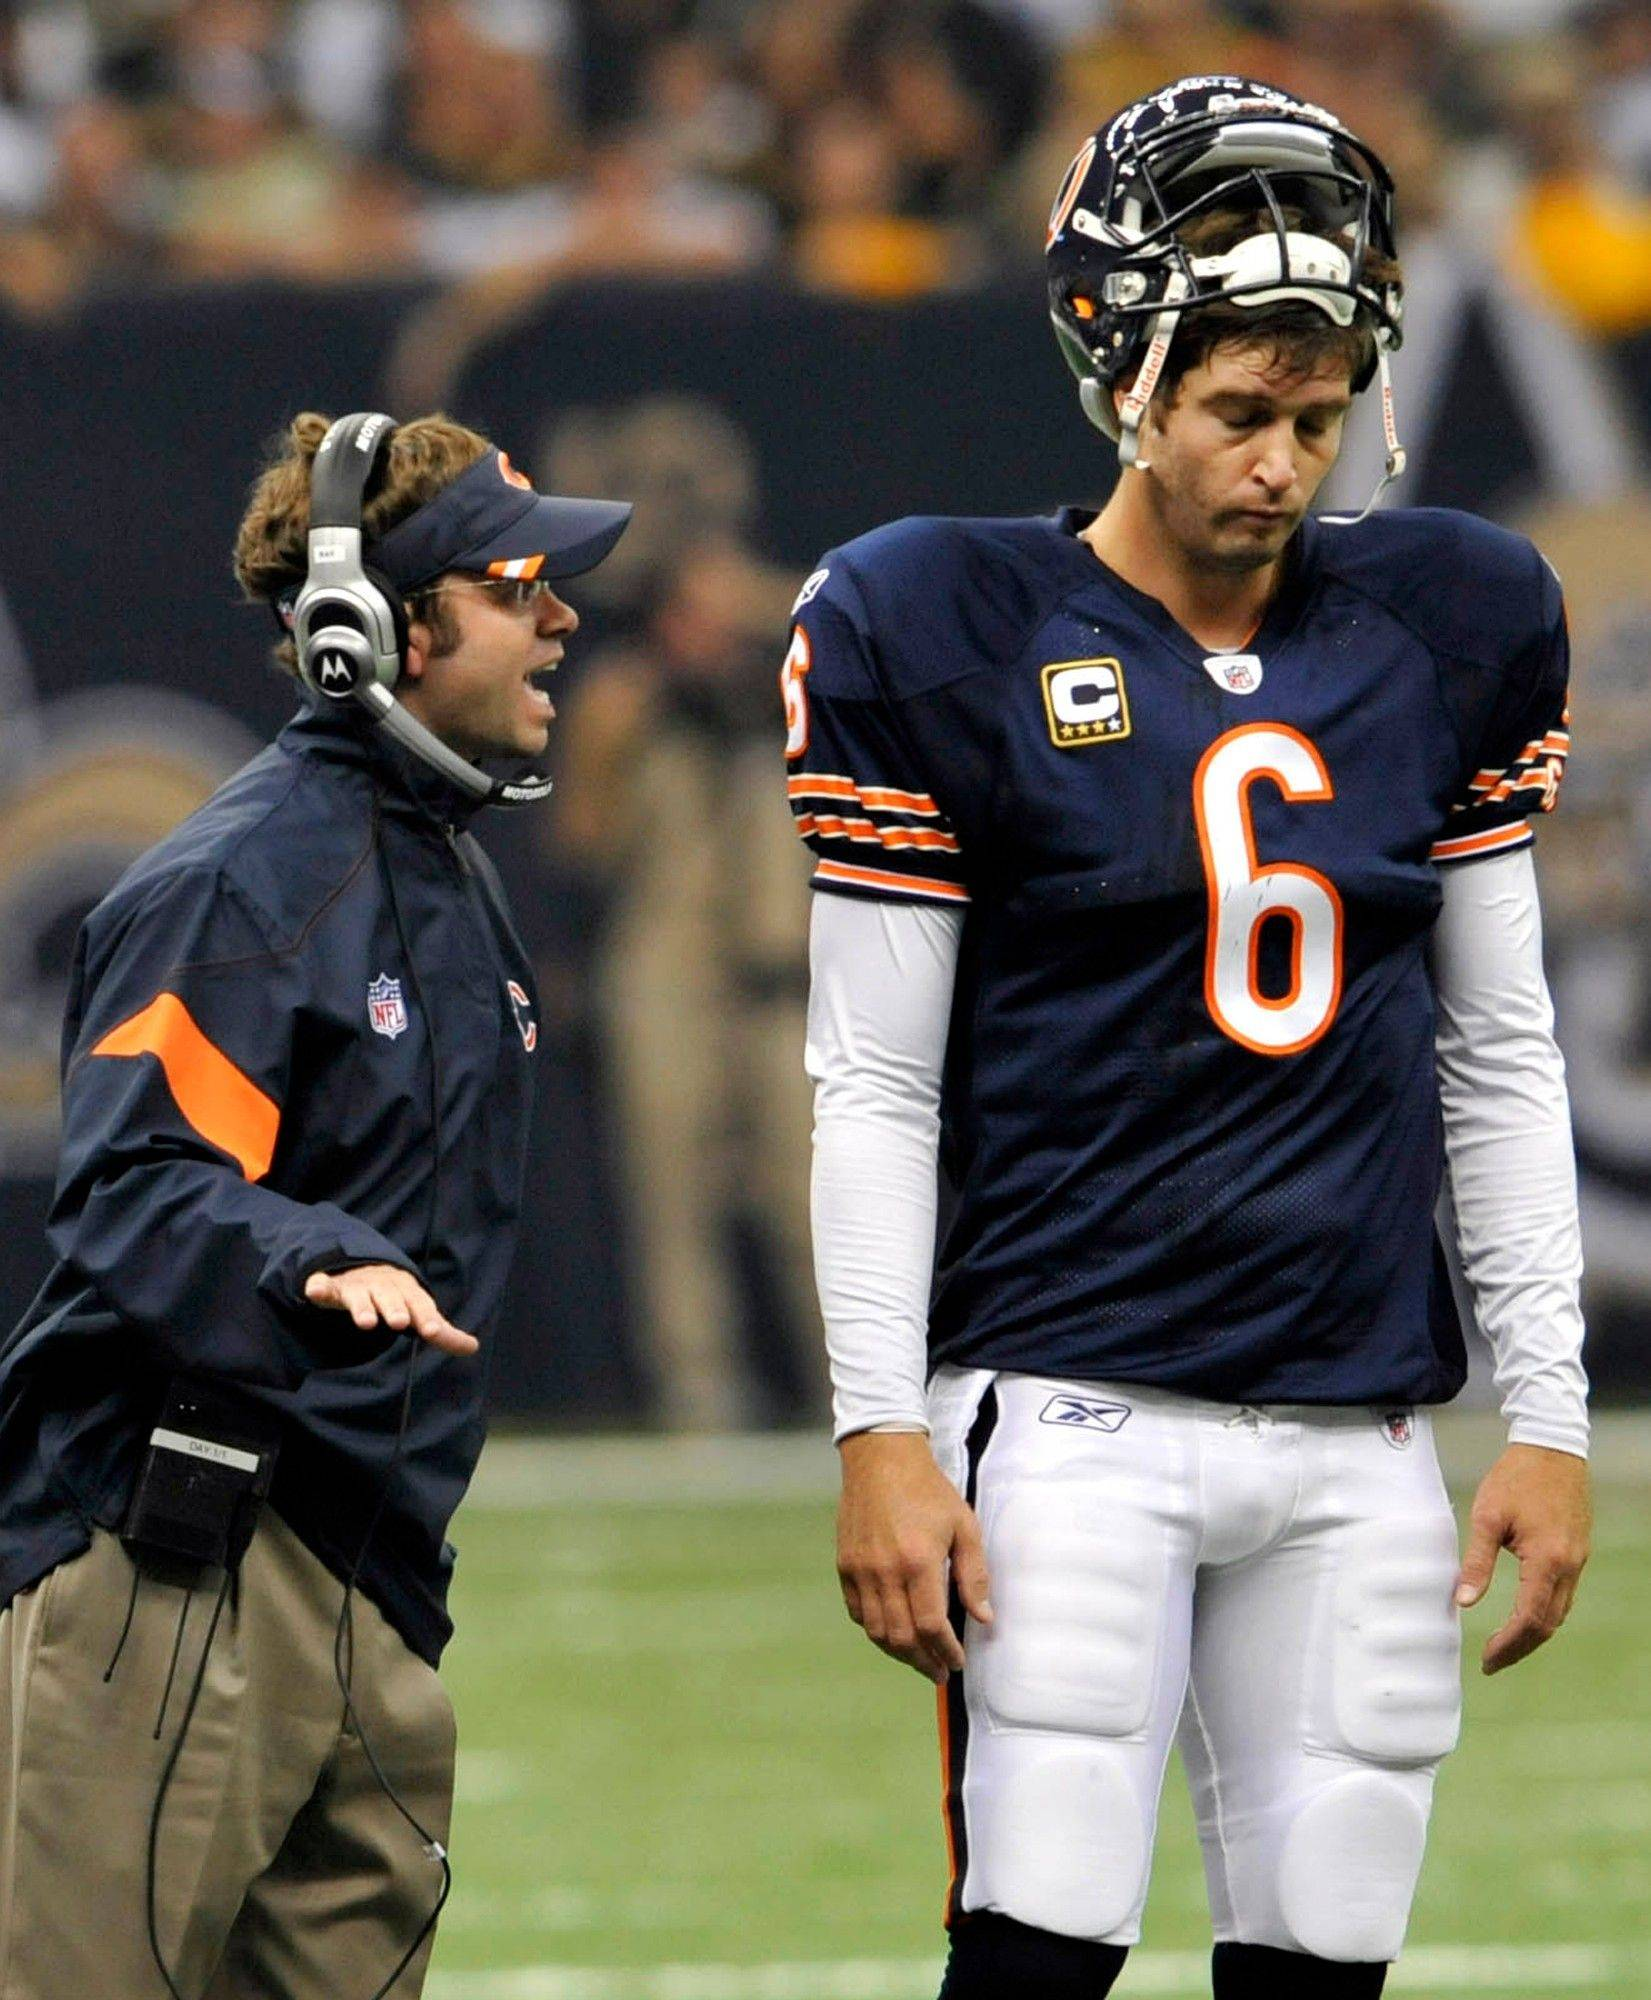 Painful experience for Cutler, Bears